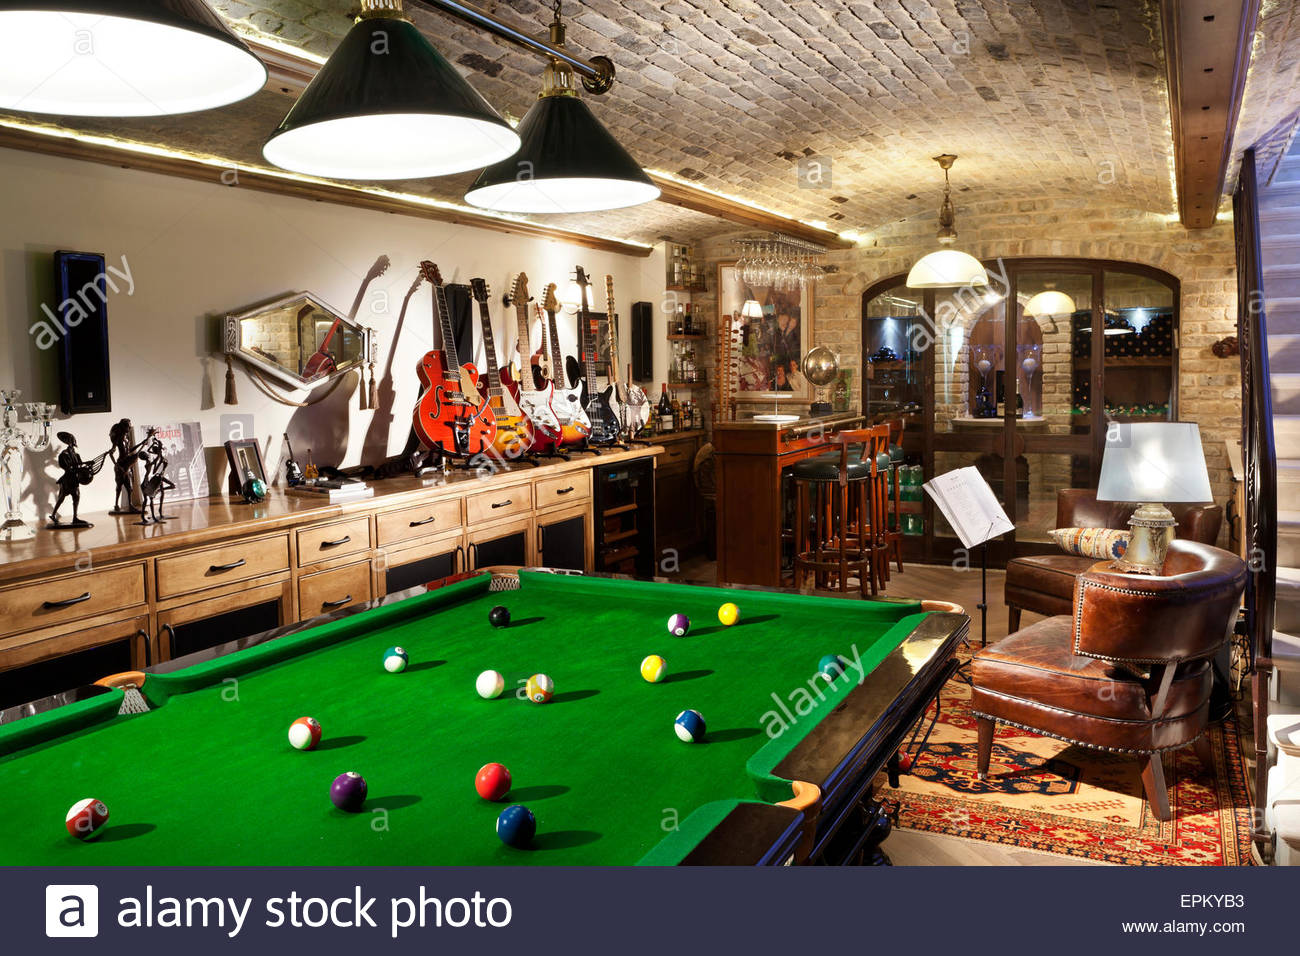 Games room with pool table, bar and electric guitar collection in country villa, Moshav Bnaya, Israel. - Stock Image